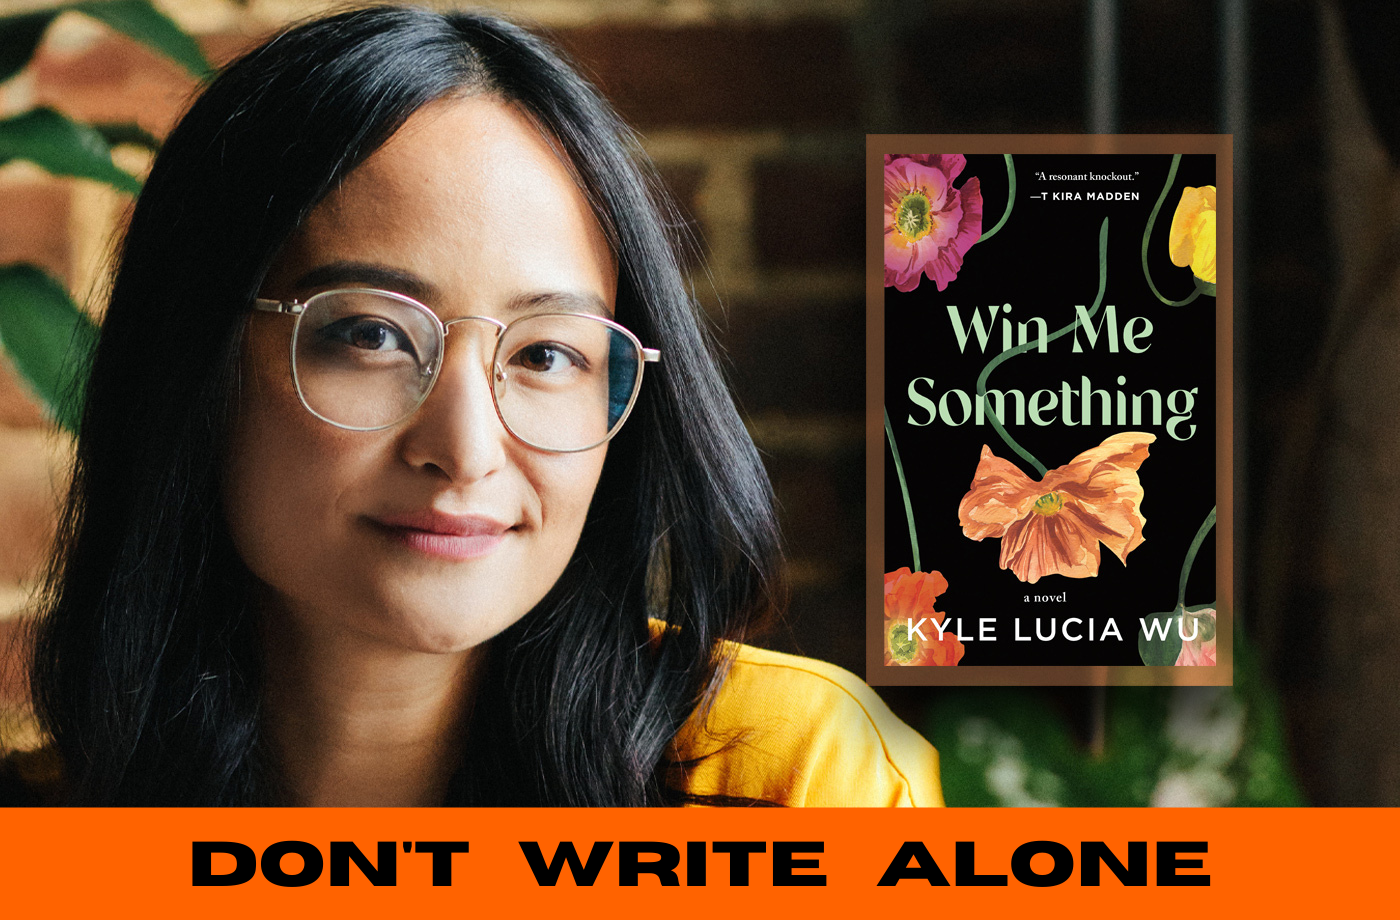 Catapult online classes: Kyle Lucia Wu, 2-Day Online Fiction Workshop: Don't Write Alone (Receiving Intentional Feedback), Fiction, Workshop